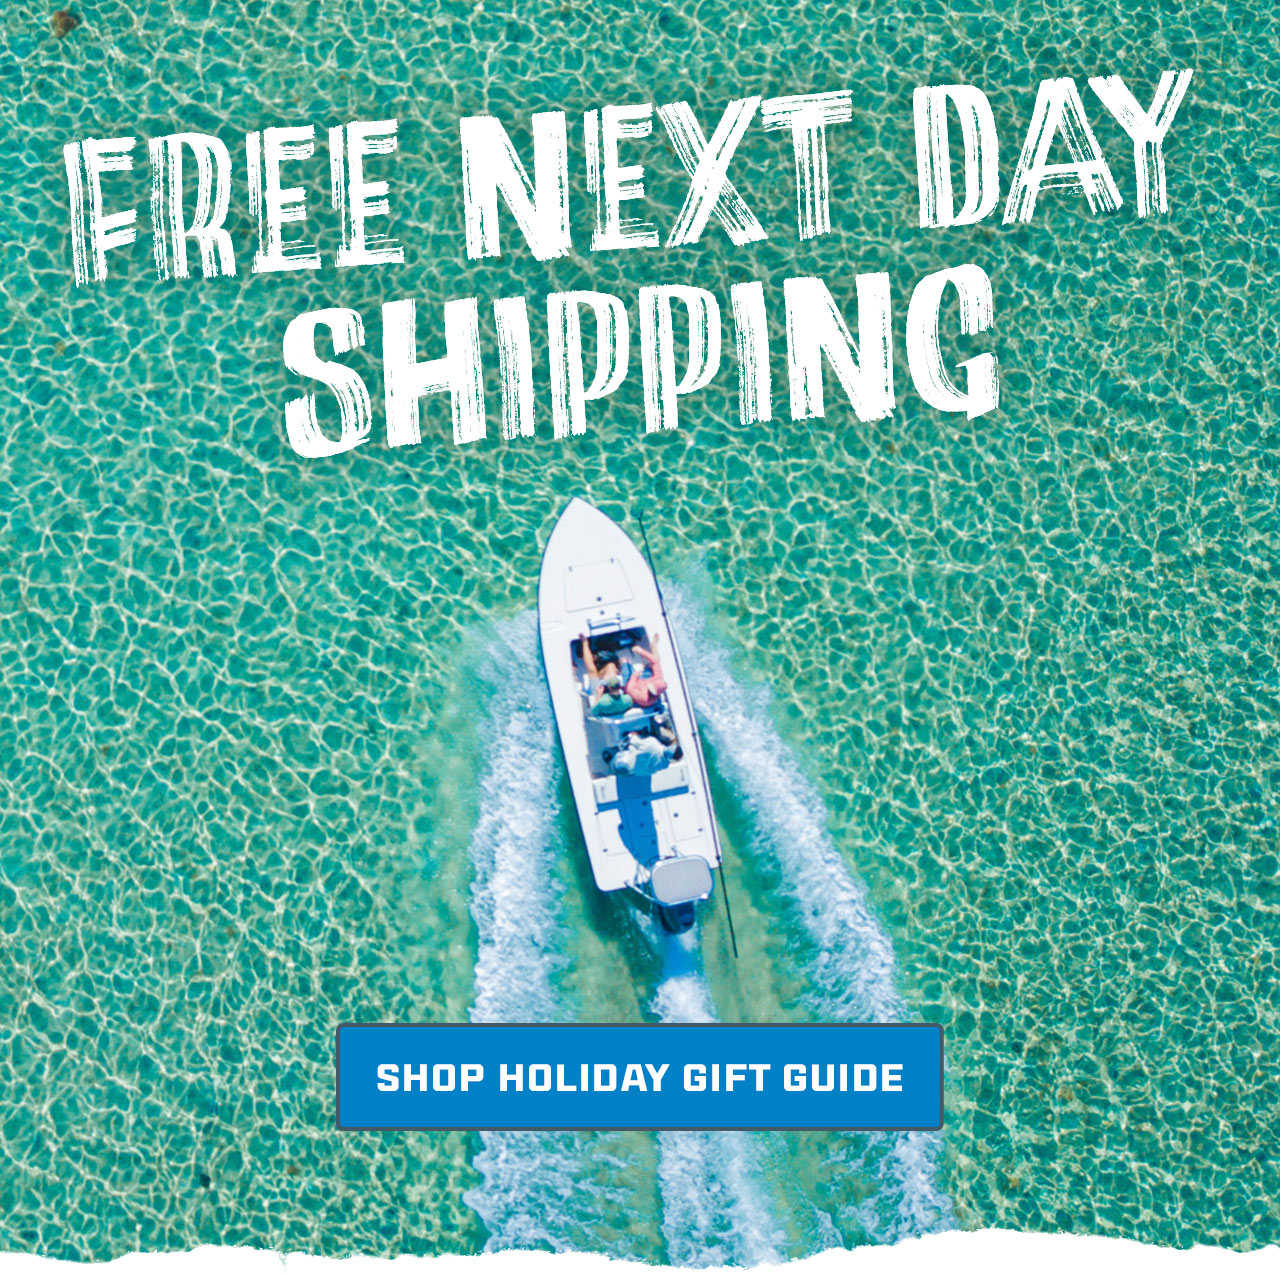 Free Next Day Shipping